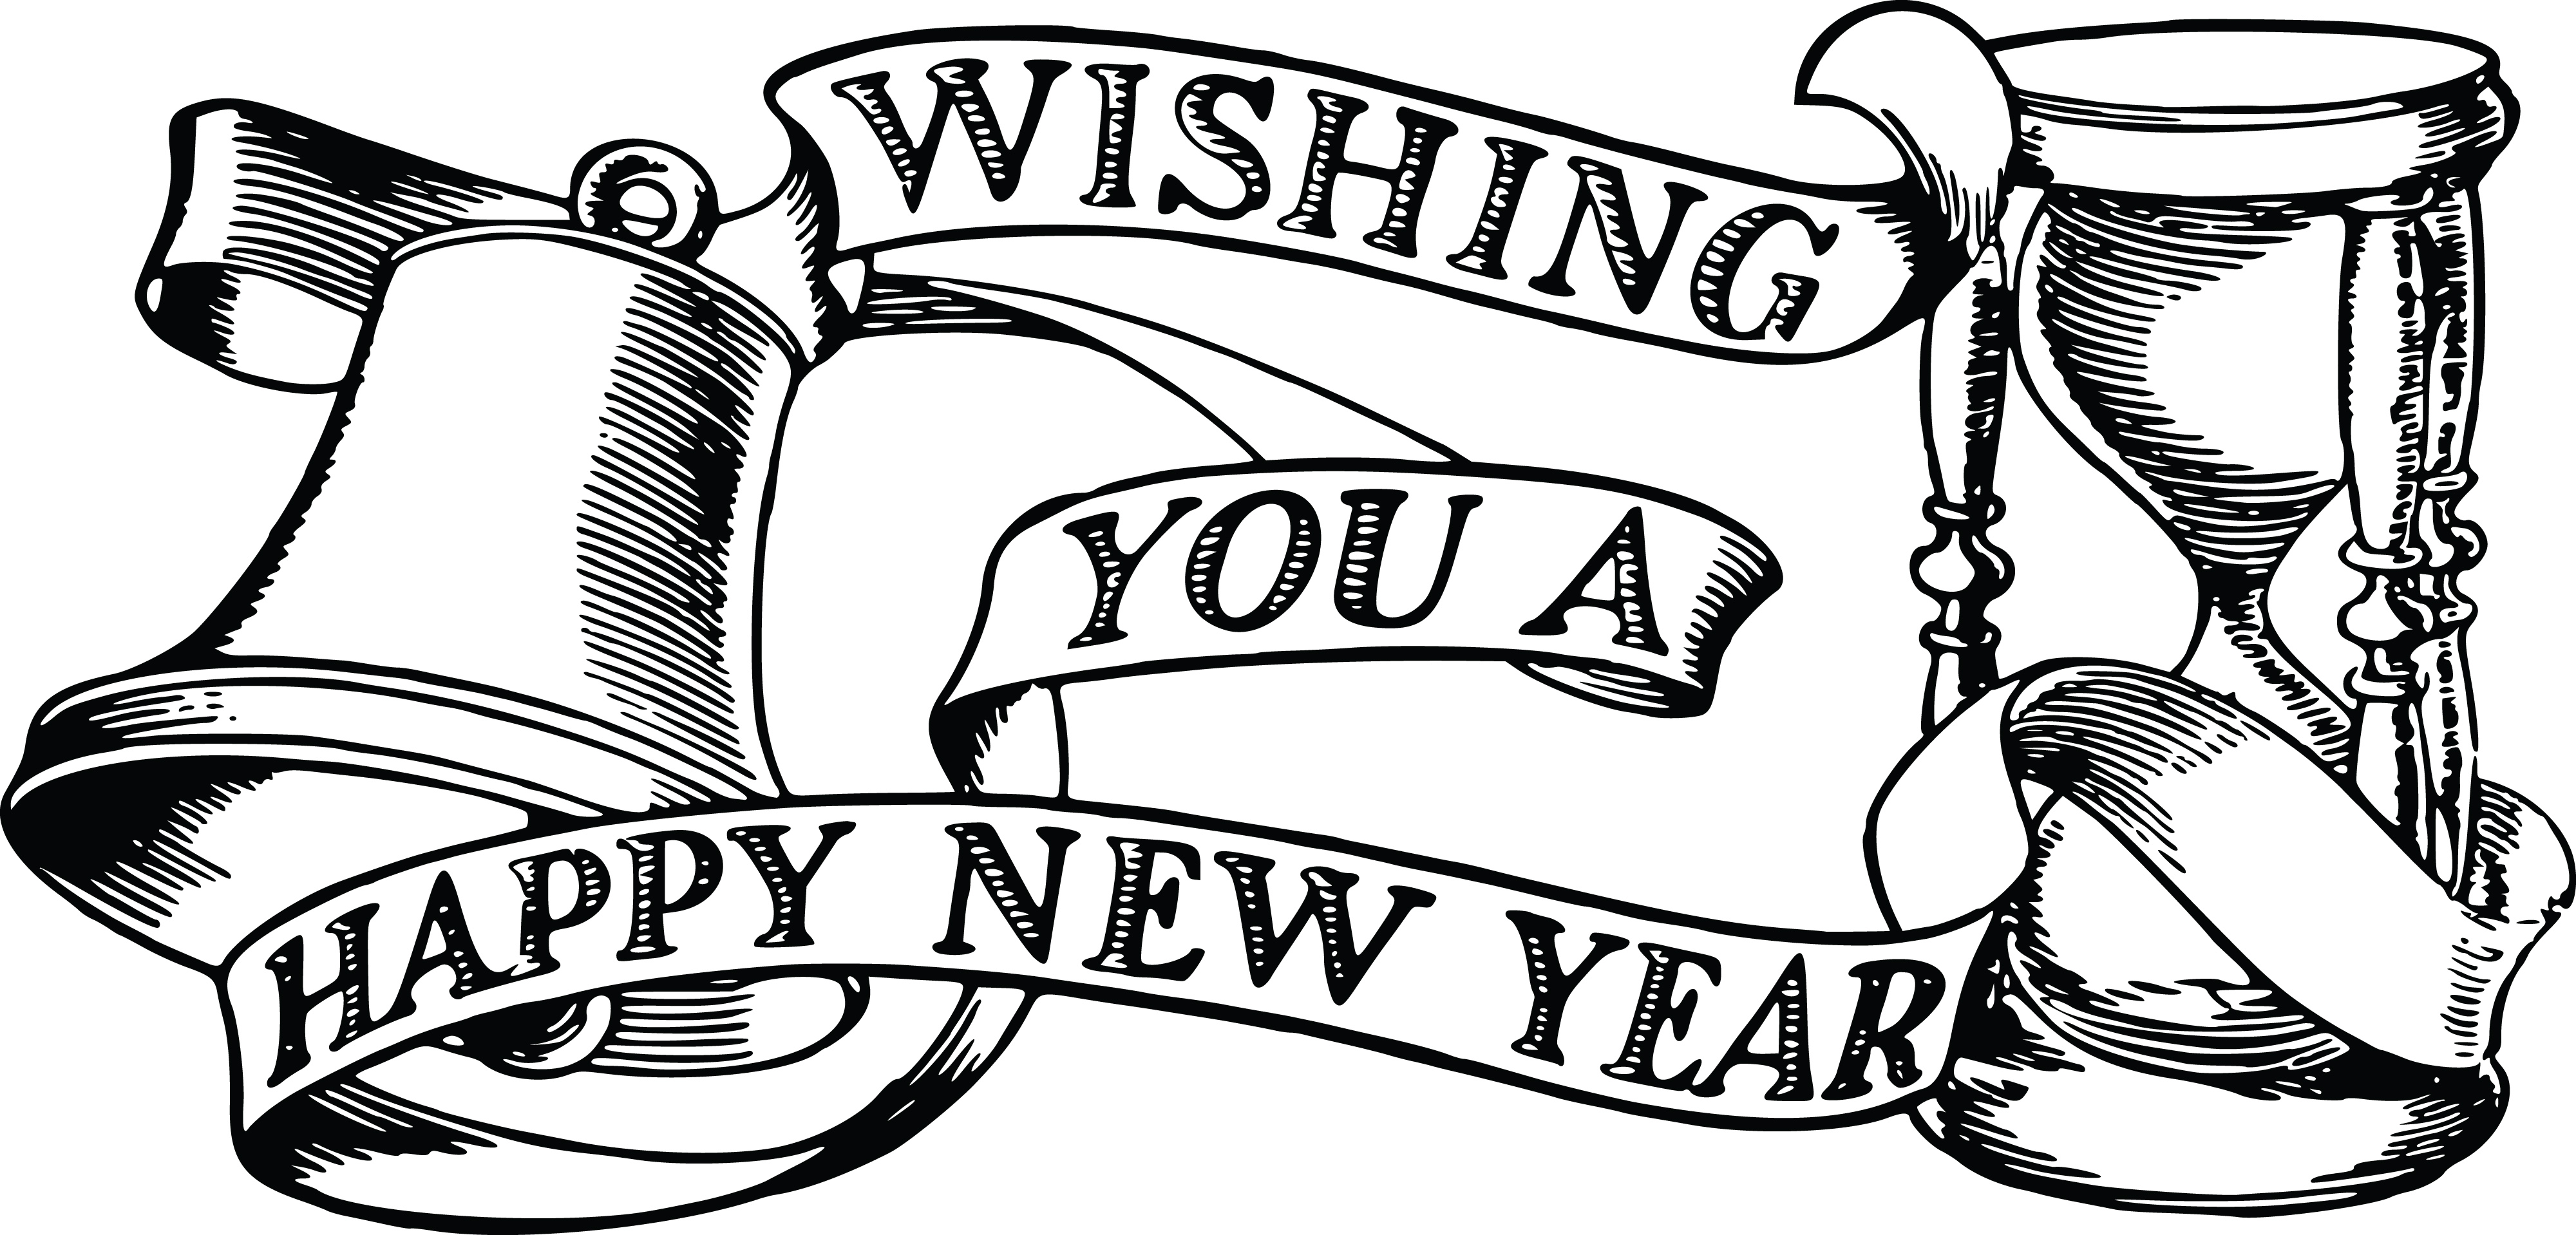 Delightful Free Clipart Of A Bell Hourglass And Happy New Year Banner #00011822 .